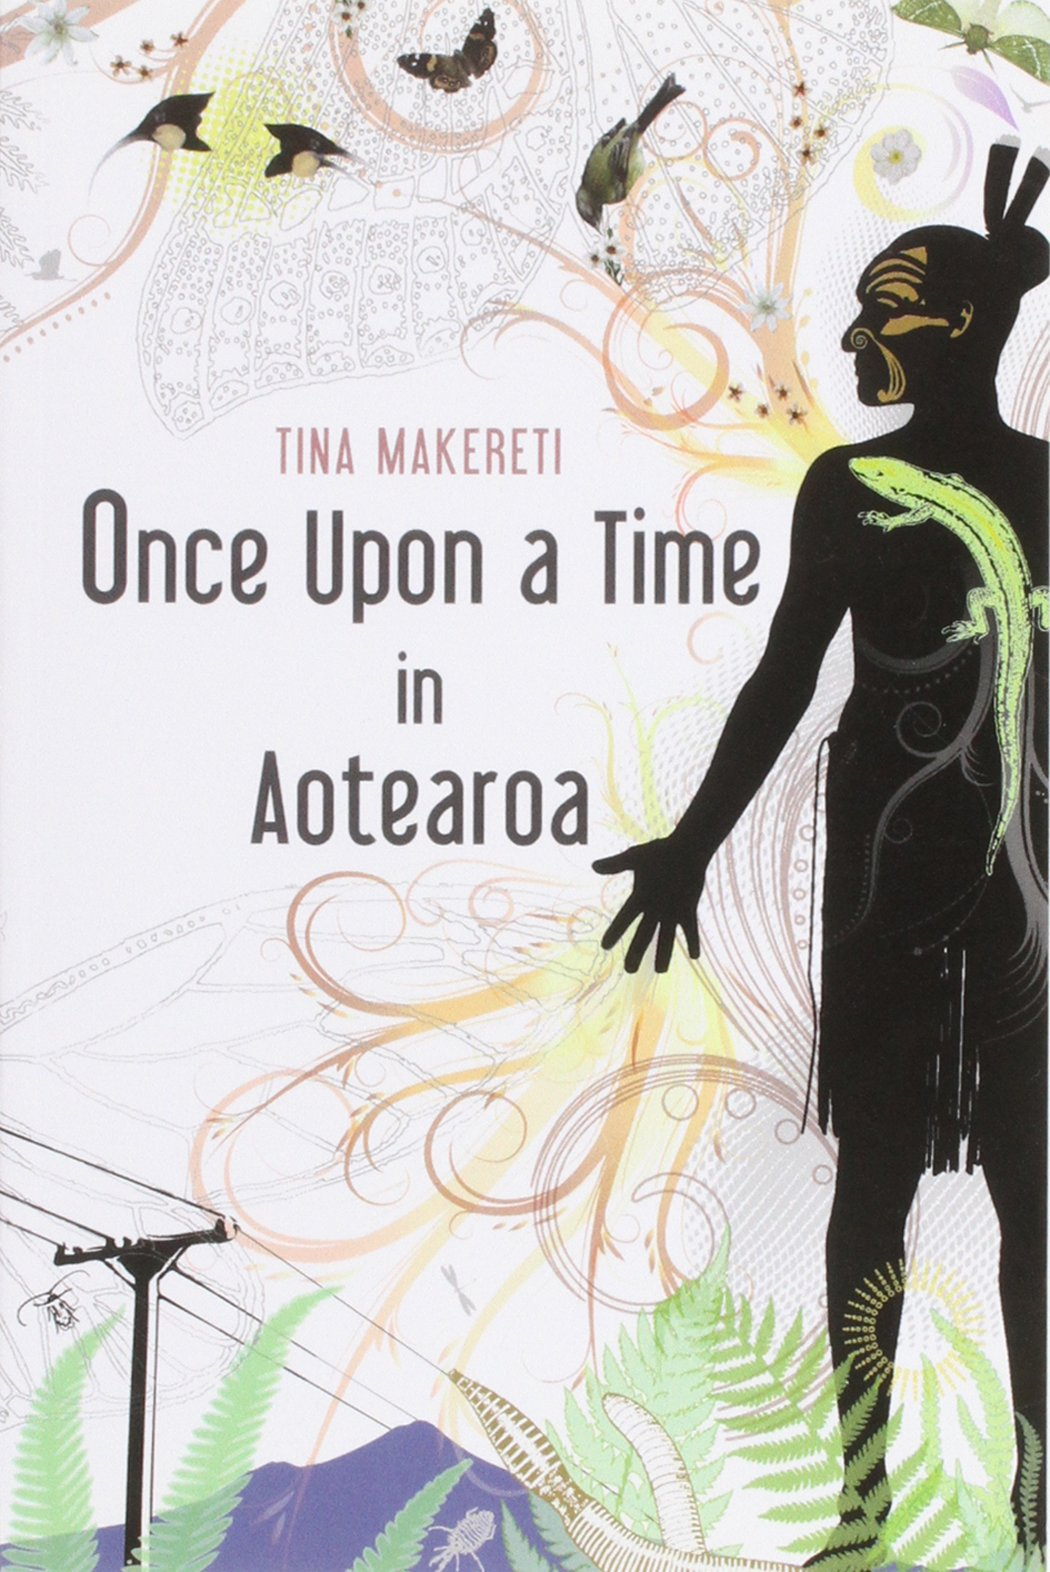 Once Upon a Time in Aotearoa Paperback – January 31, 2011